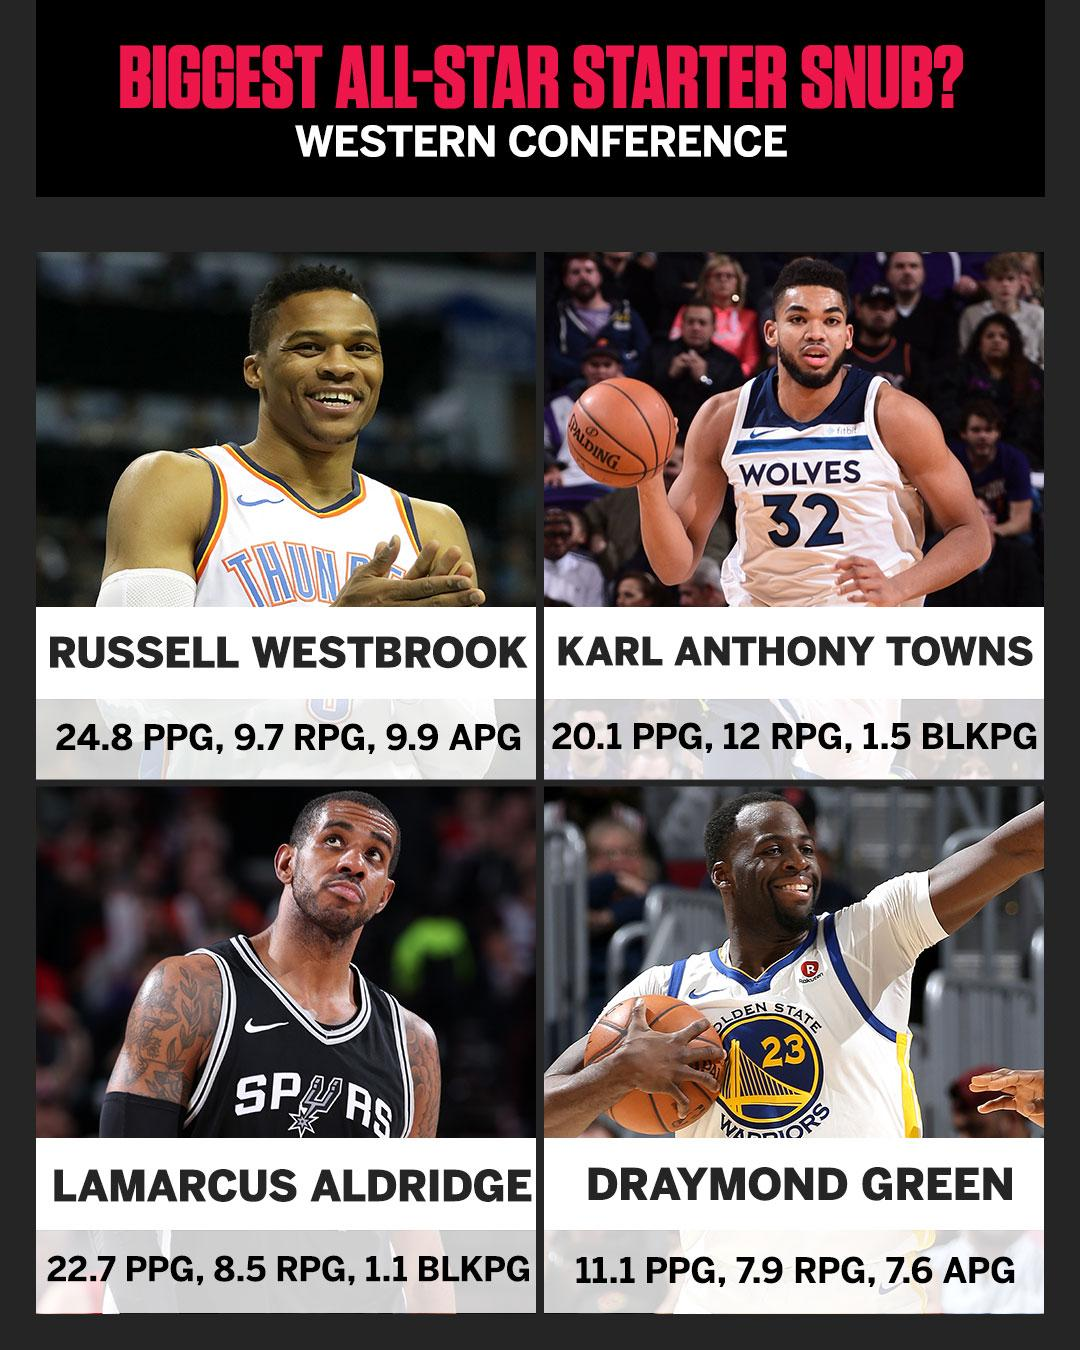 Who do you think should have made the cut in the West? https://t.co/kTlmfg9H4r